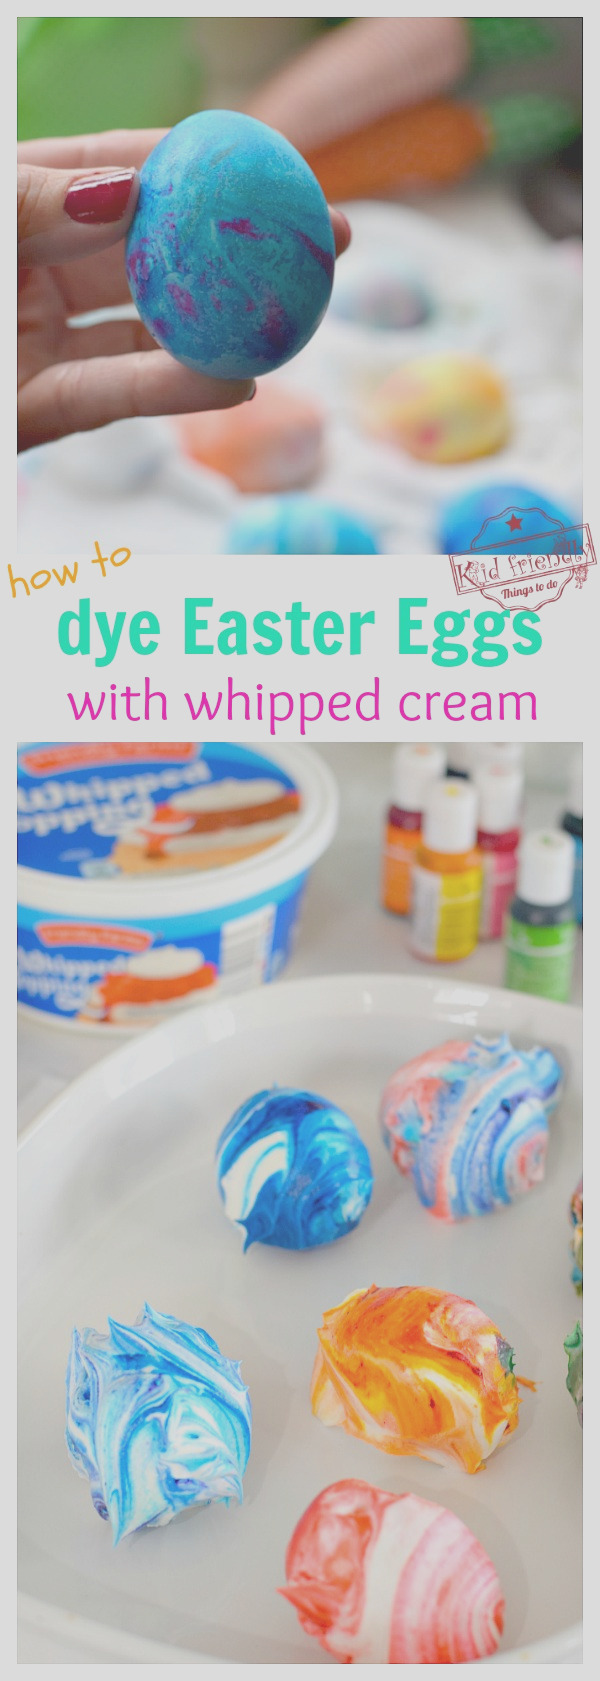 how to dye eggs with whipped cream using muffin tins kid friendly things to do